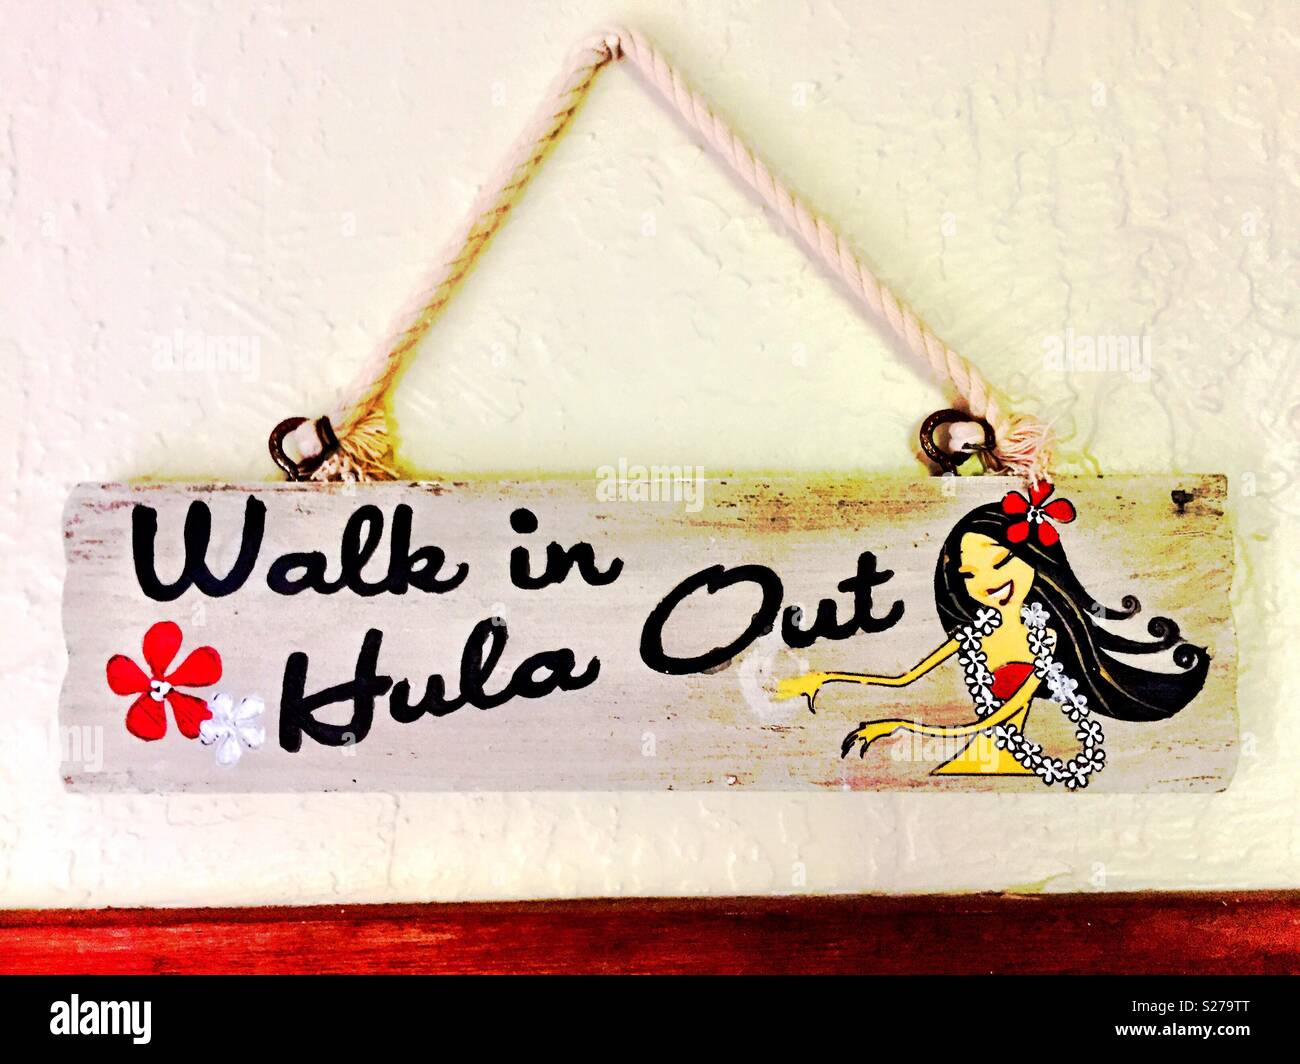 Walk in hula out traditional hawaiian entryway greeting stock traditional hawaiian entryway greeting m4hsunfo